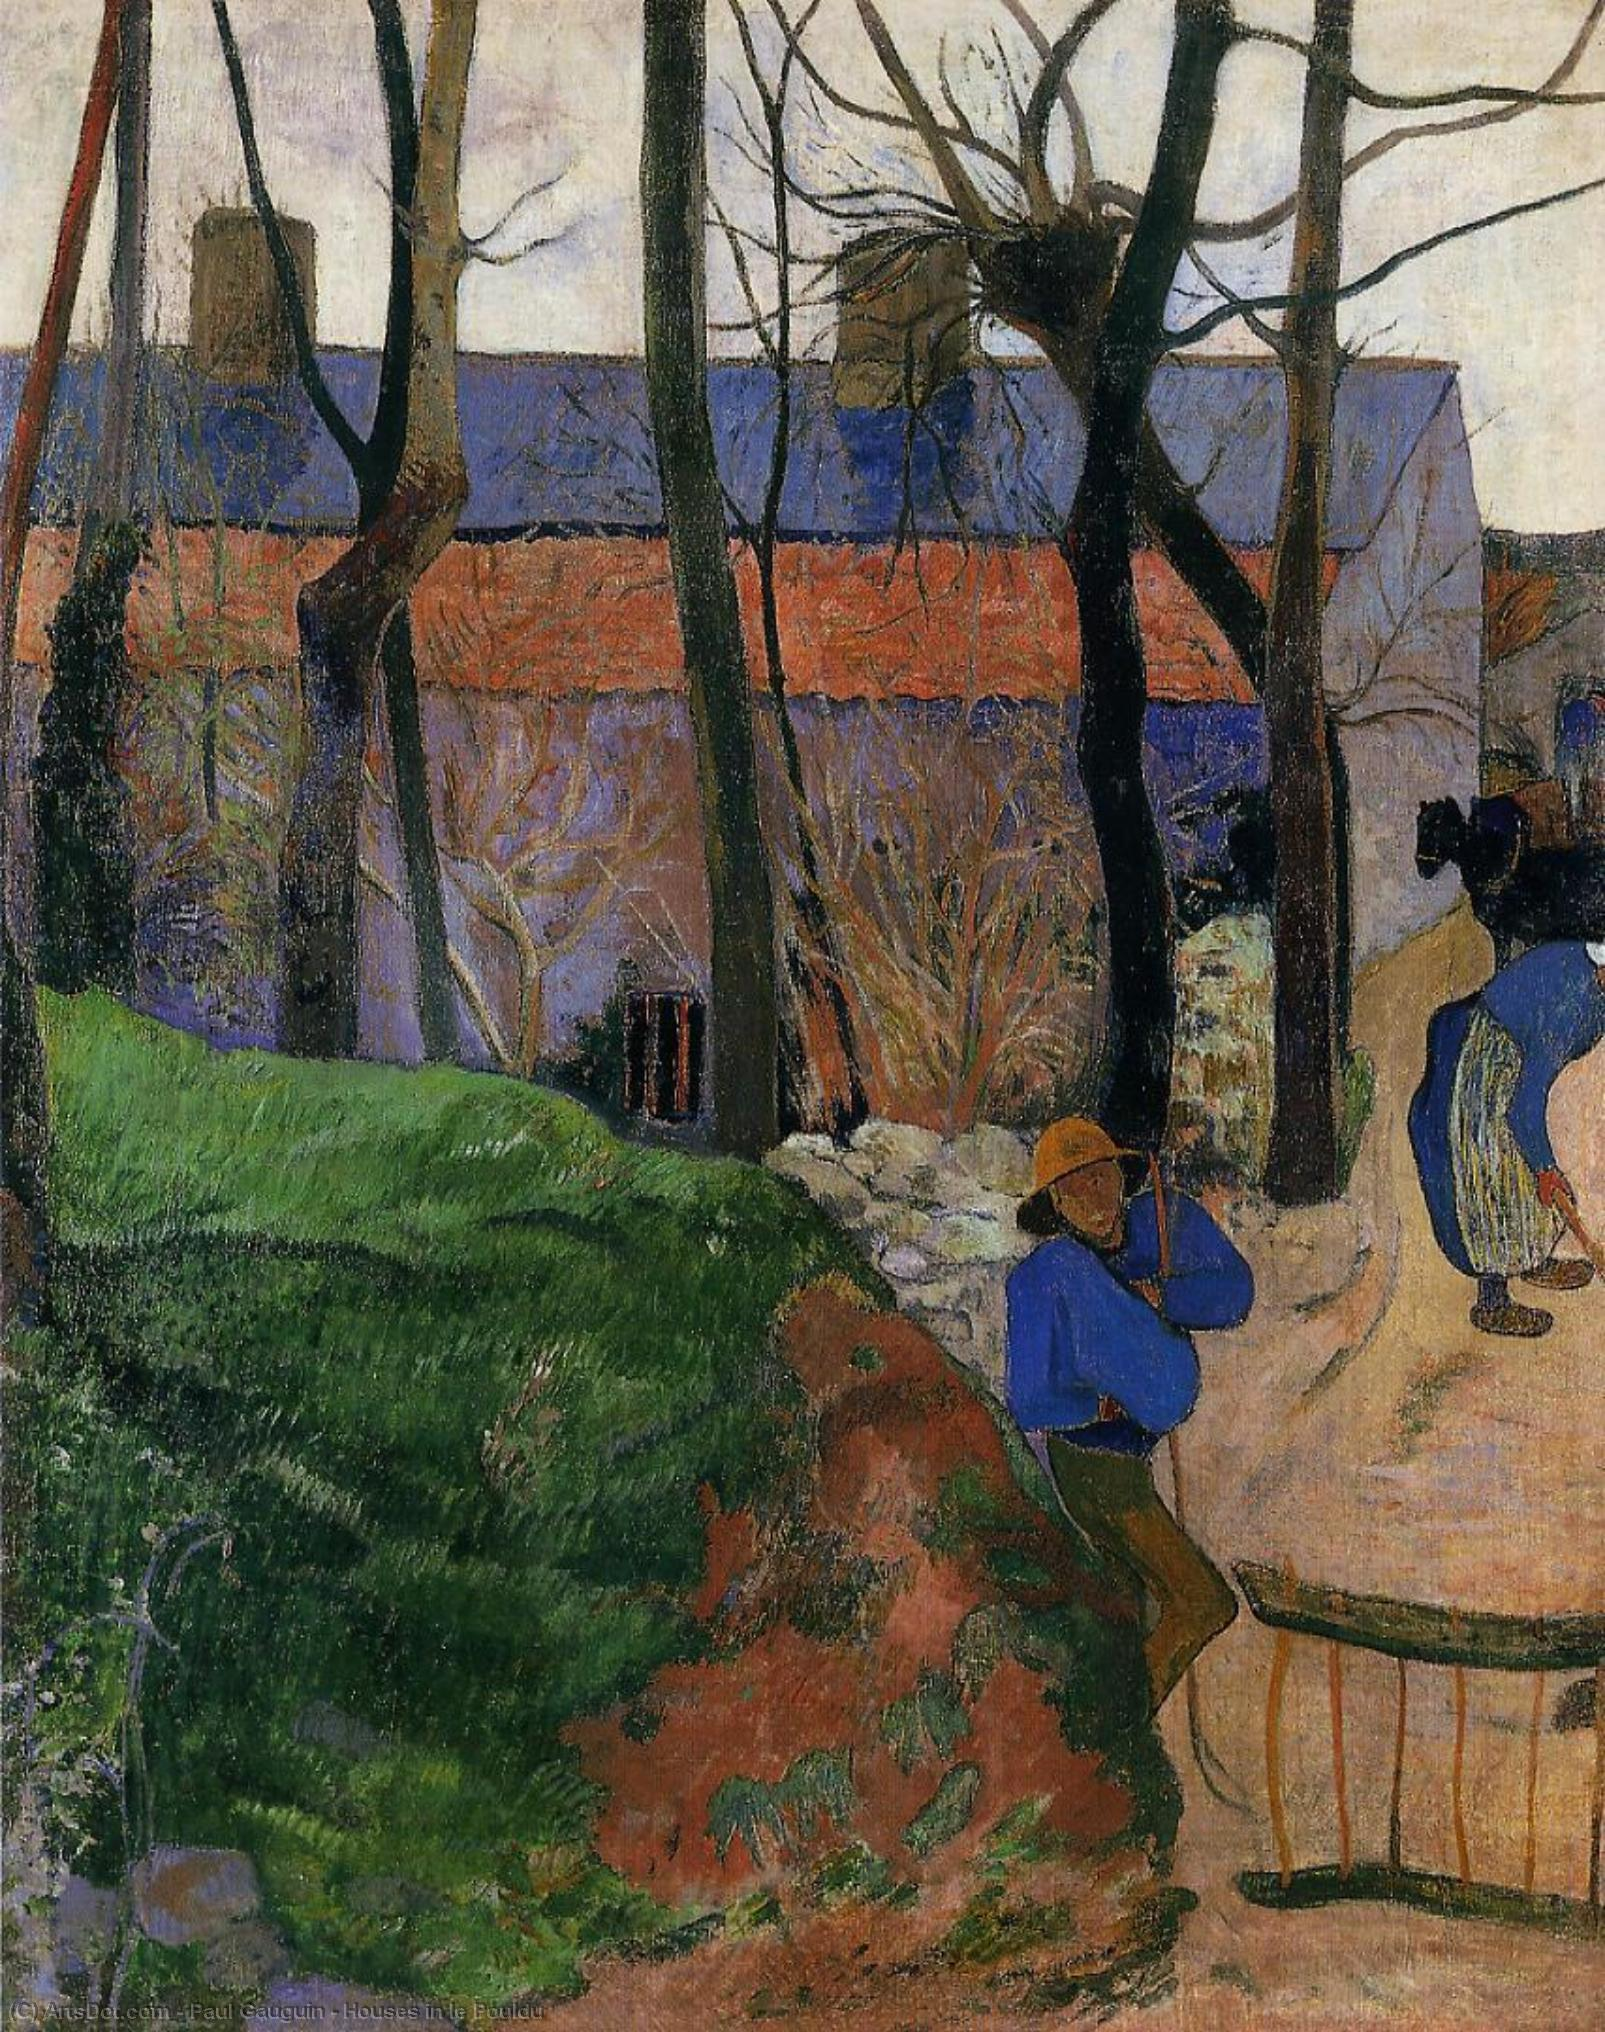 Wikioo.org - The Encyclopedia of Fine Arts - Painting, Artwork by Paul Gauguin - Houses in le Pouldu